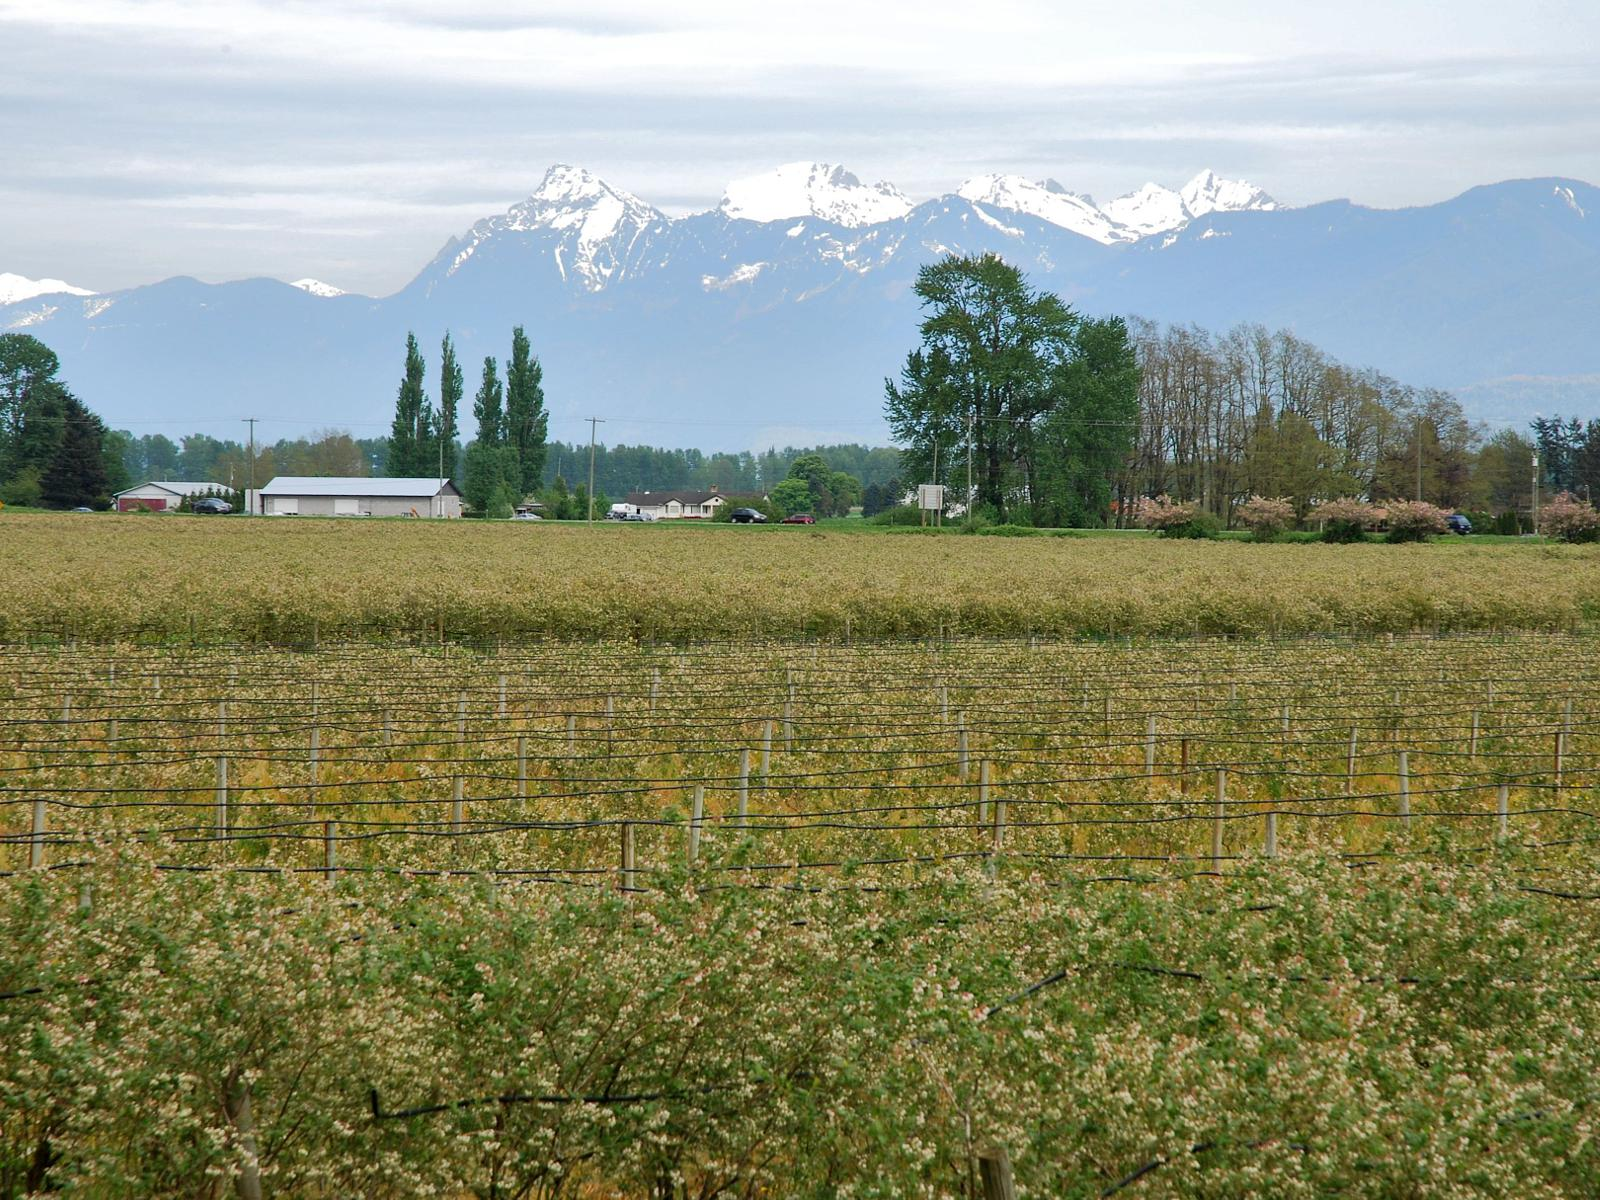 Foto de Arnold, BC, and the Chilliwack and Sumas Rivers